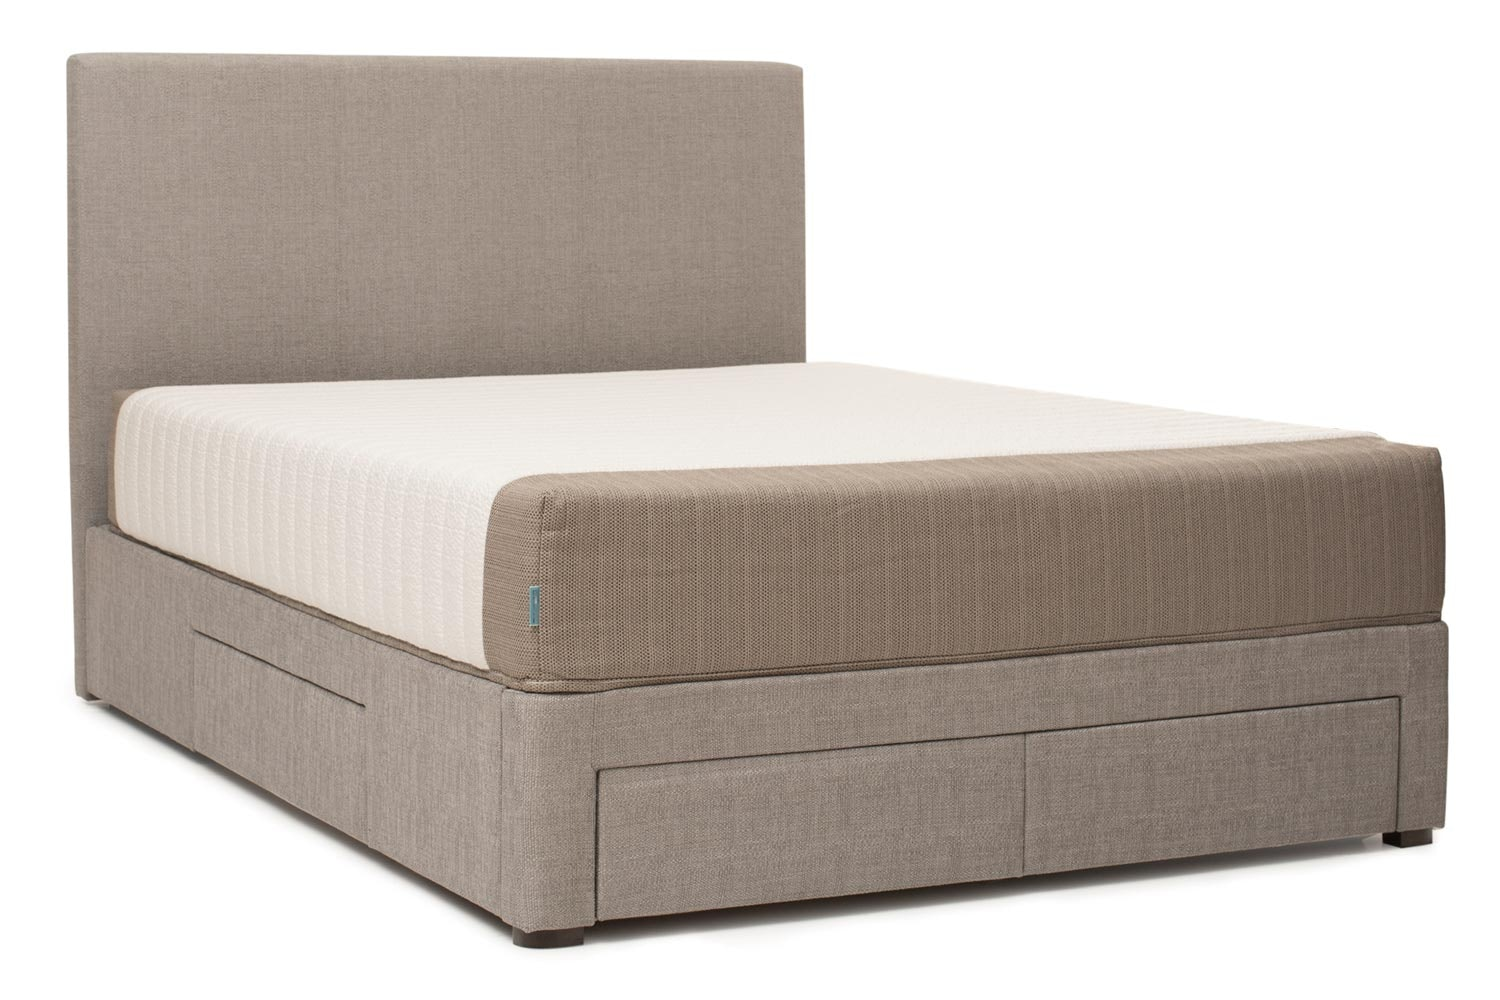 Duval Bed | Vertical Stitch with Storage | Grey | 4ft6